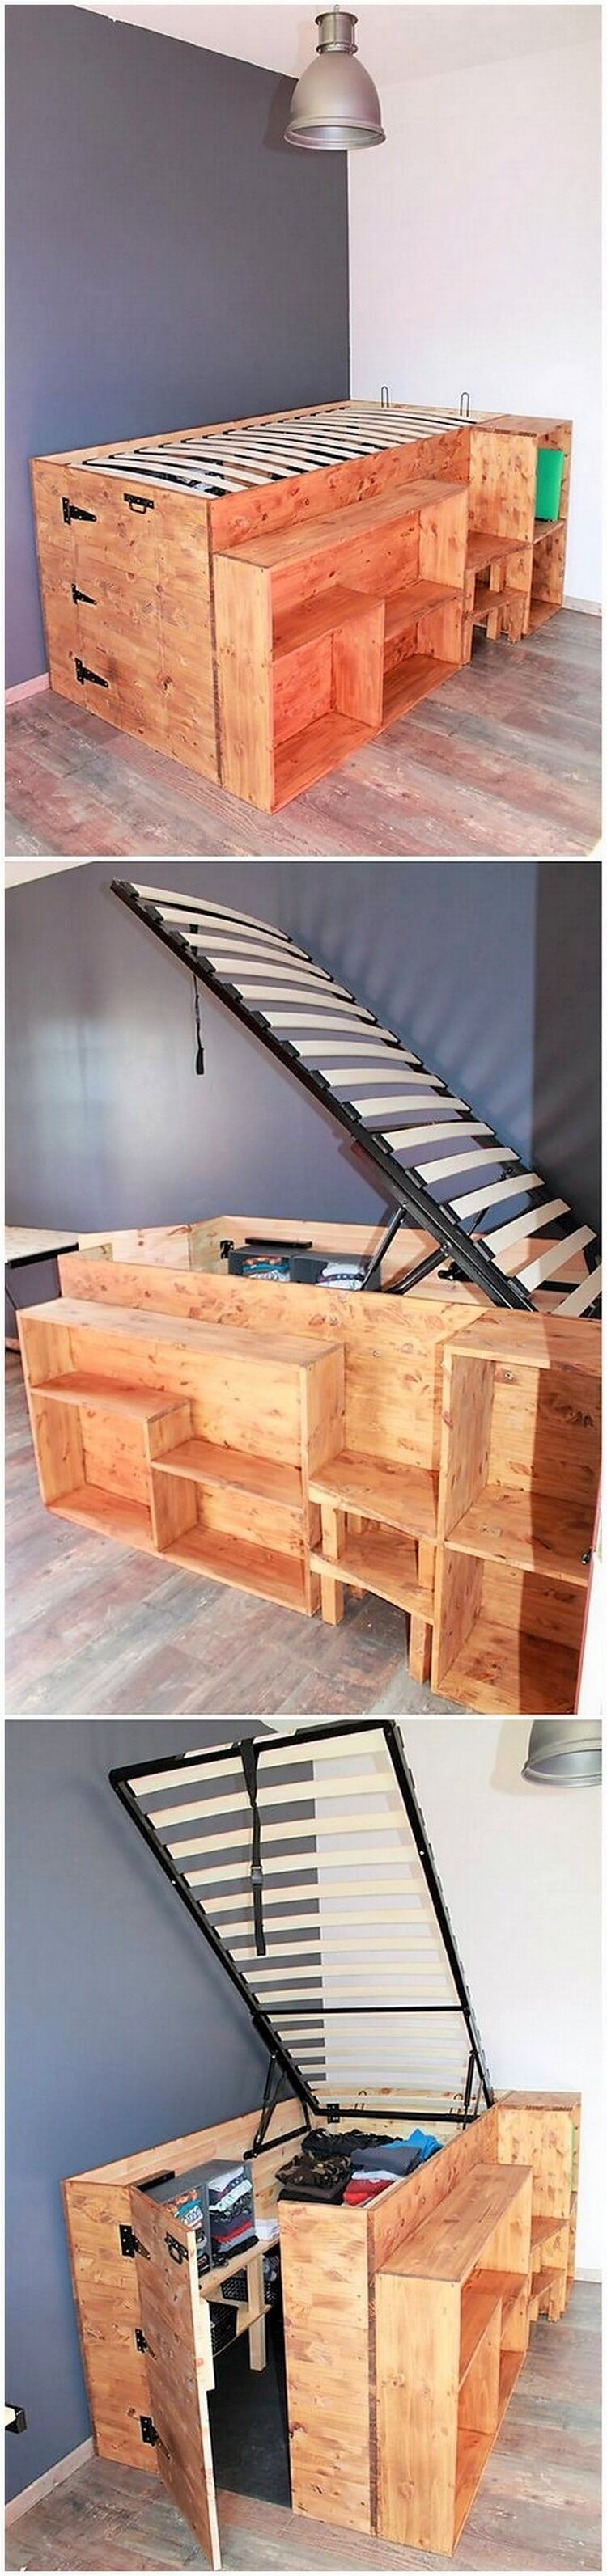 Pallet Bed with Storage (2)